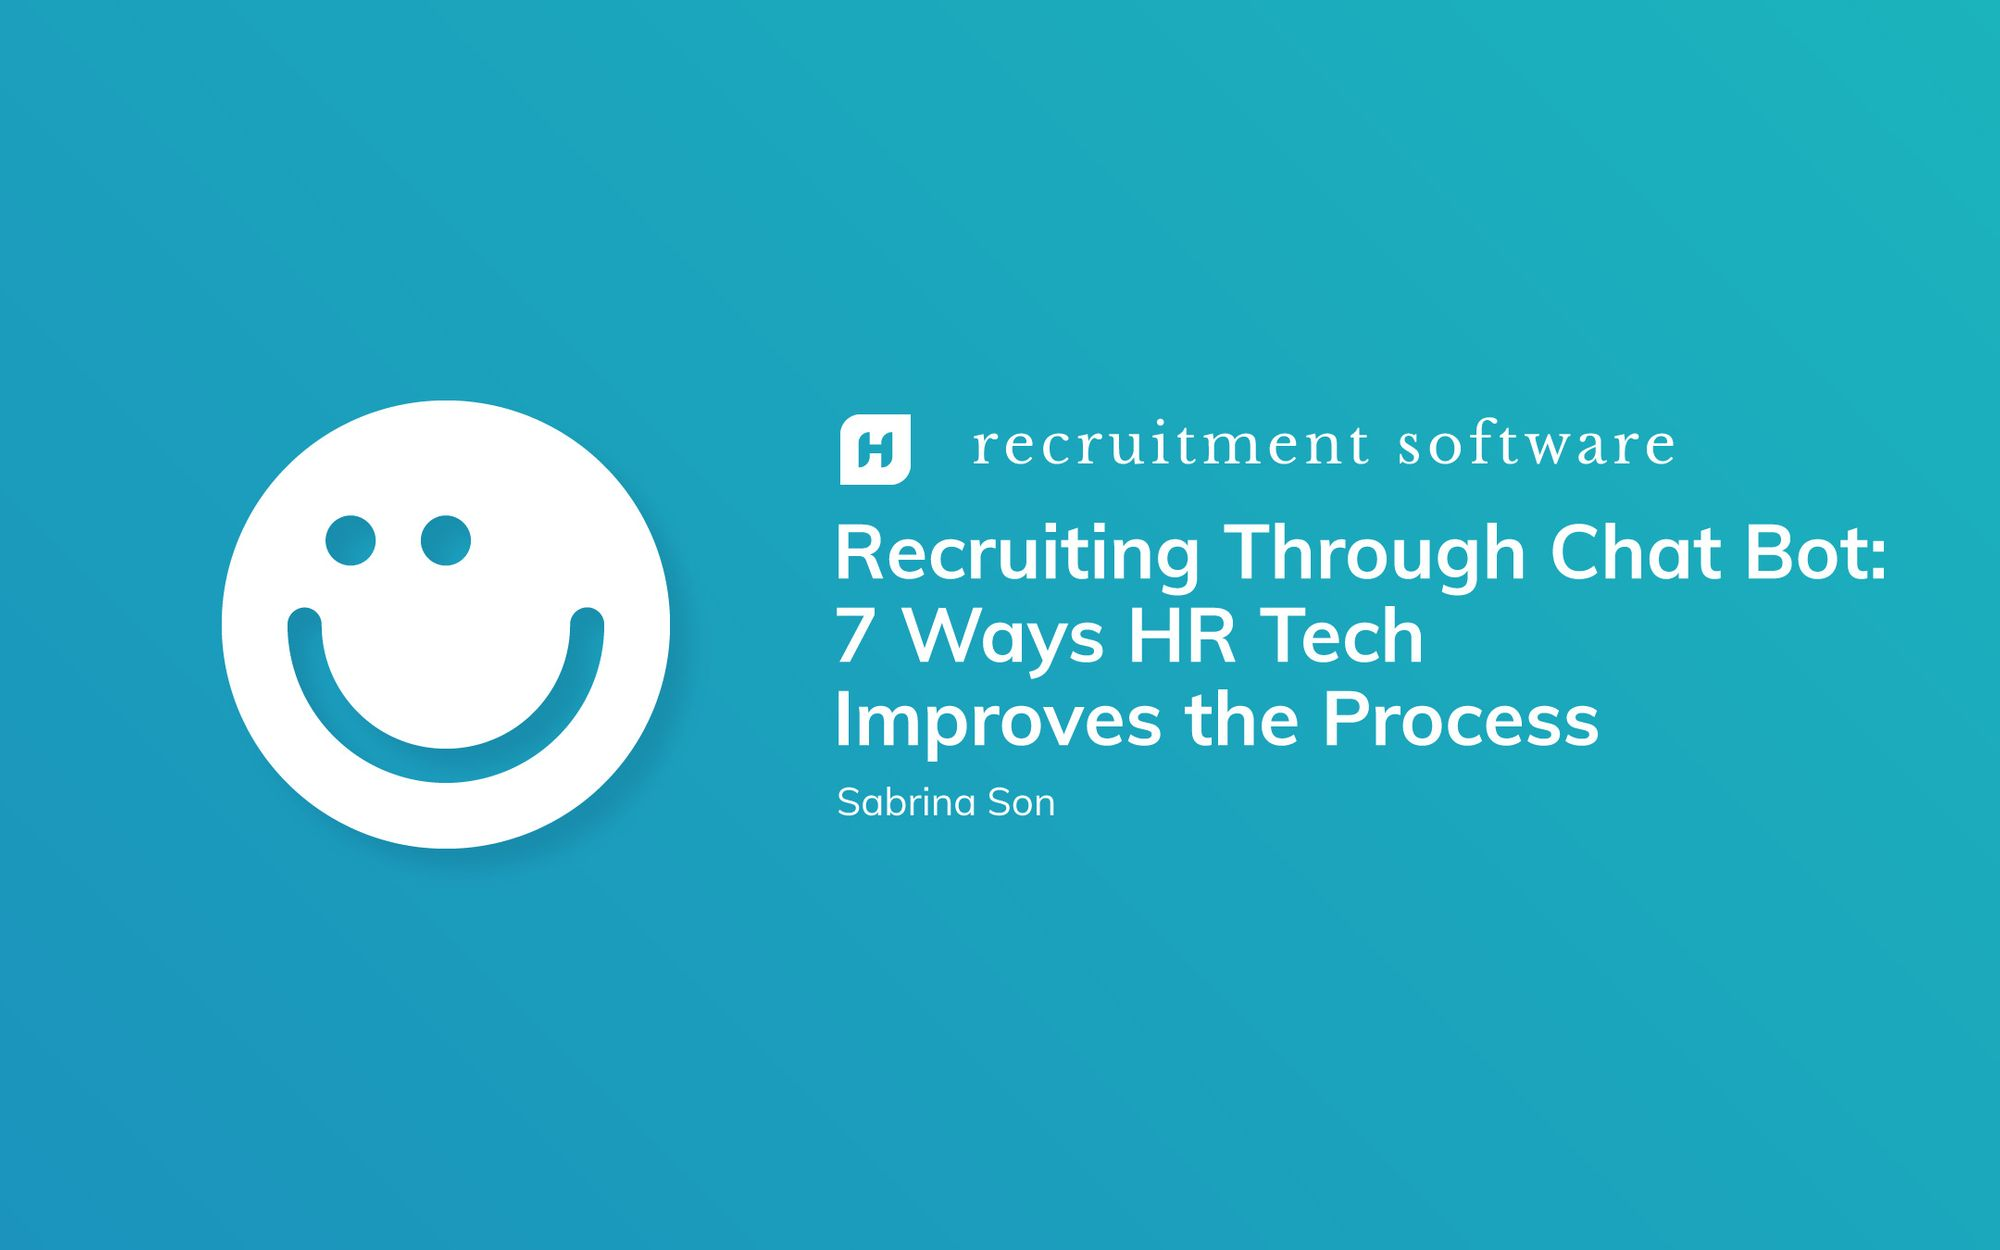 Recruiting Through Chat Bot: 7 Ways HR Tech Improves the Process